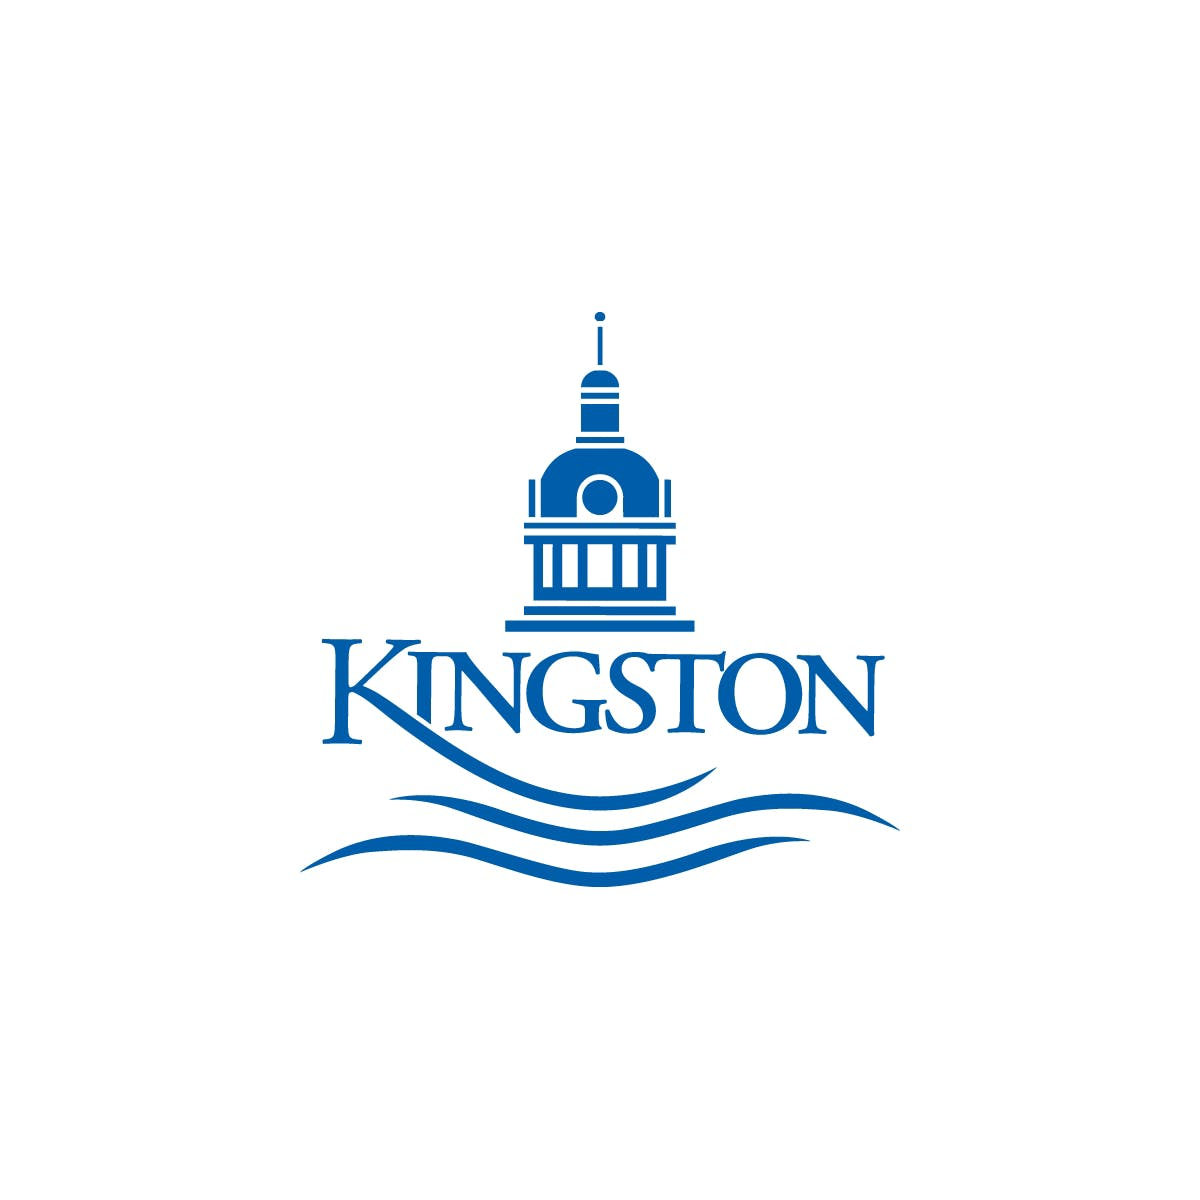 Kingston logo blue 3in whitespacelarge